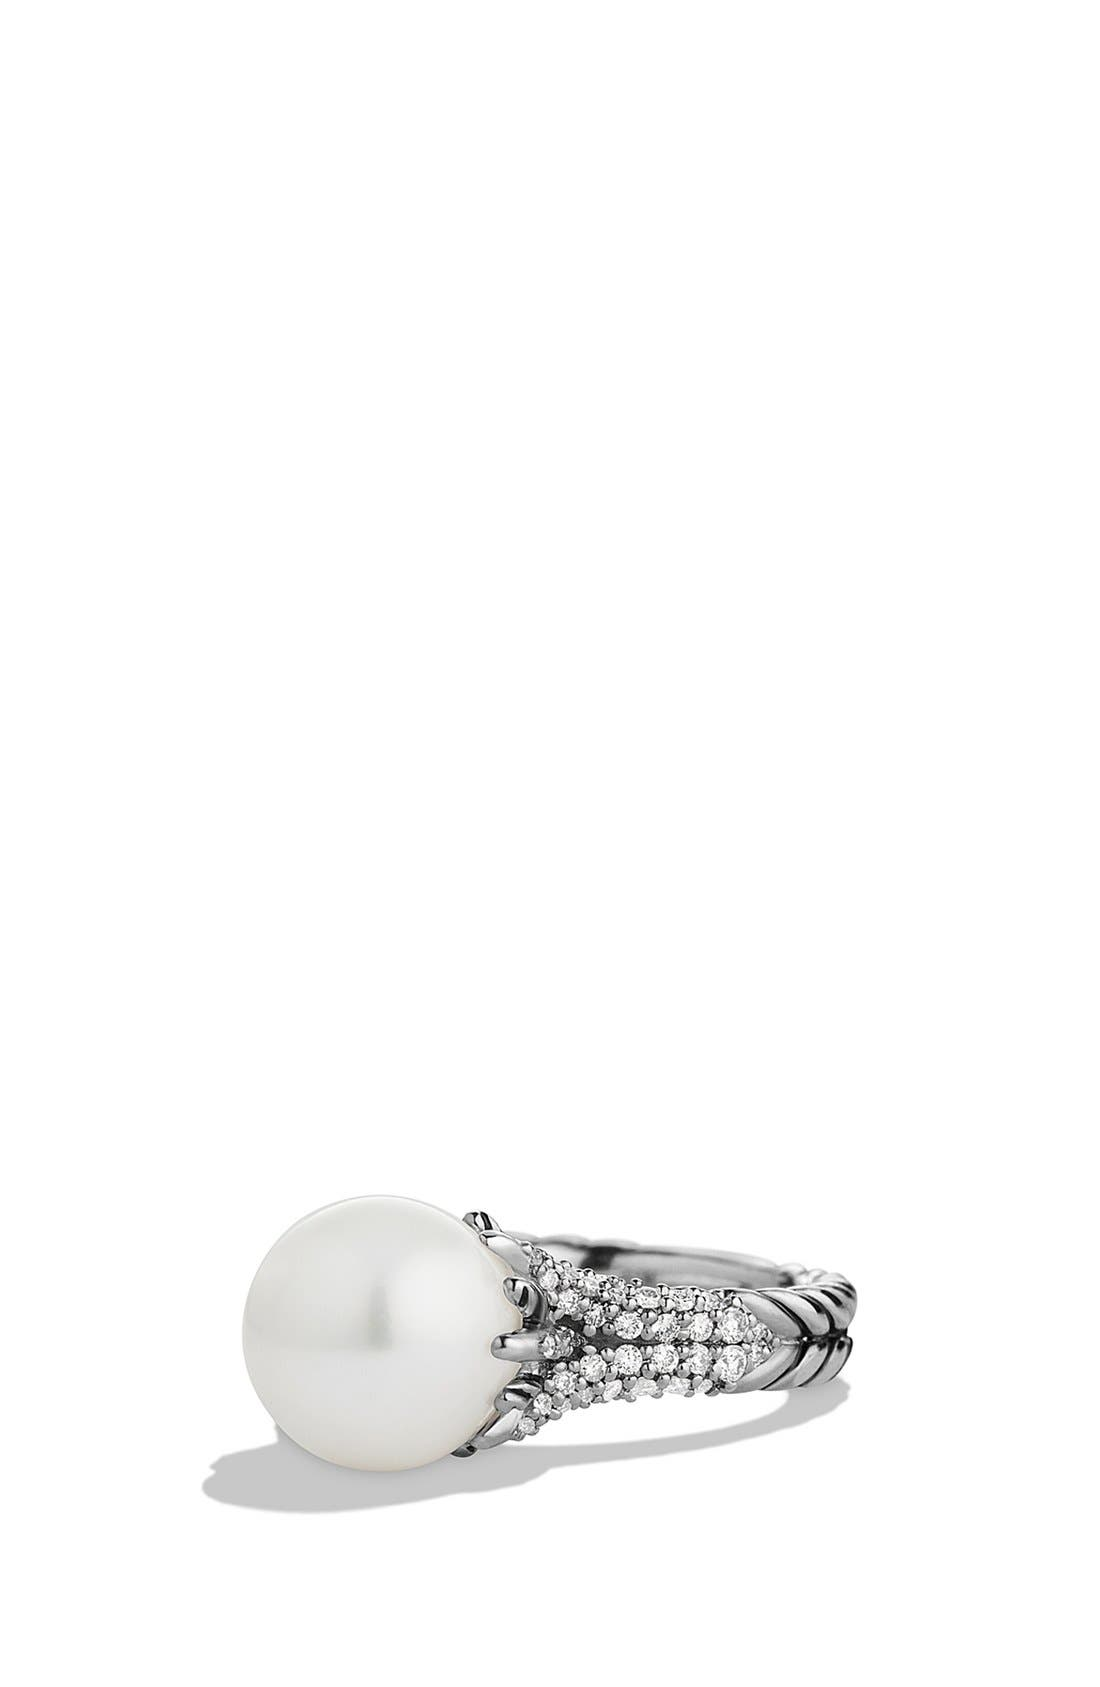 DAVID YURMAN Starburst Pearl Ring with Diamonds